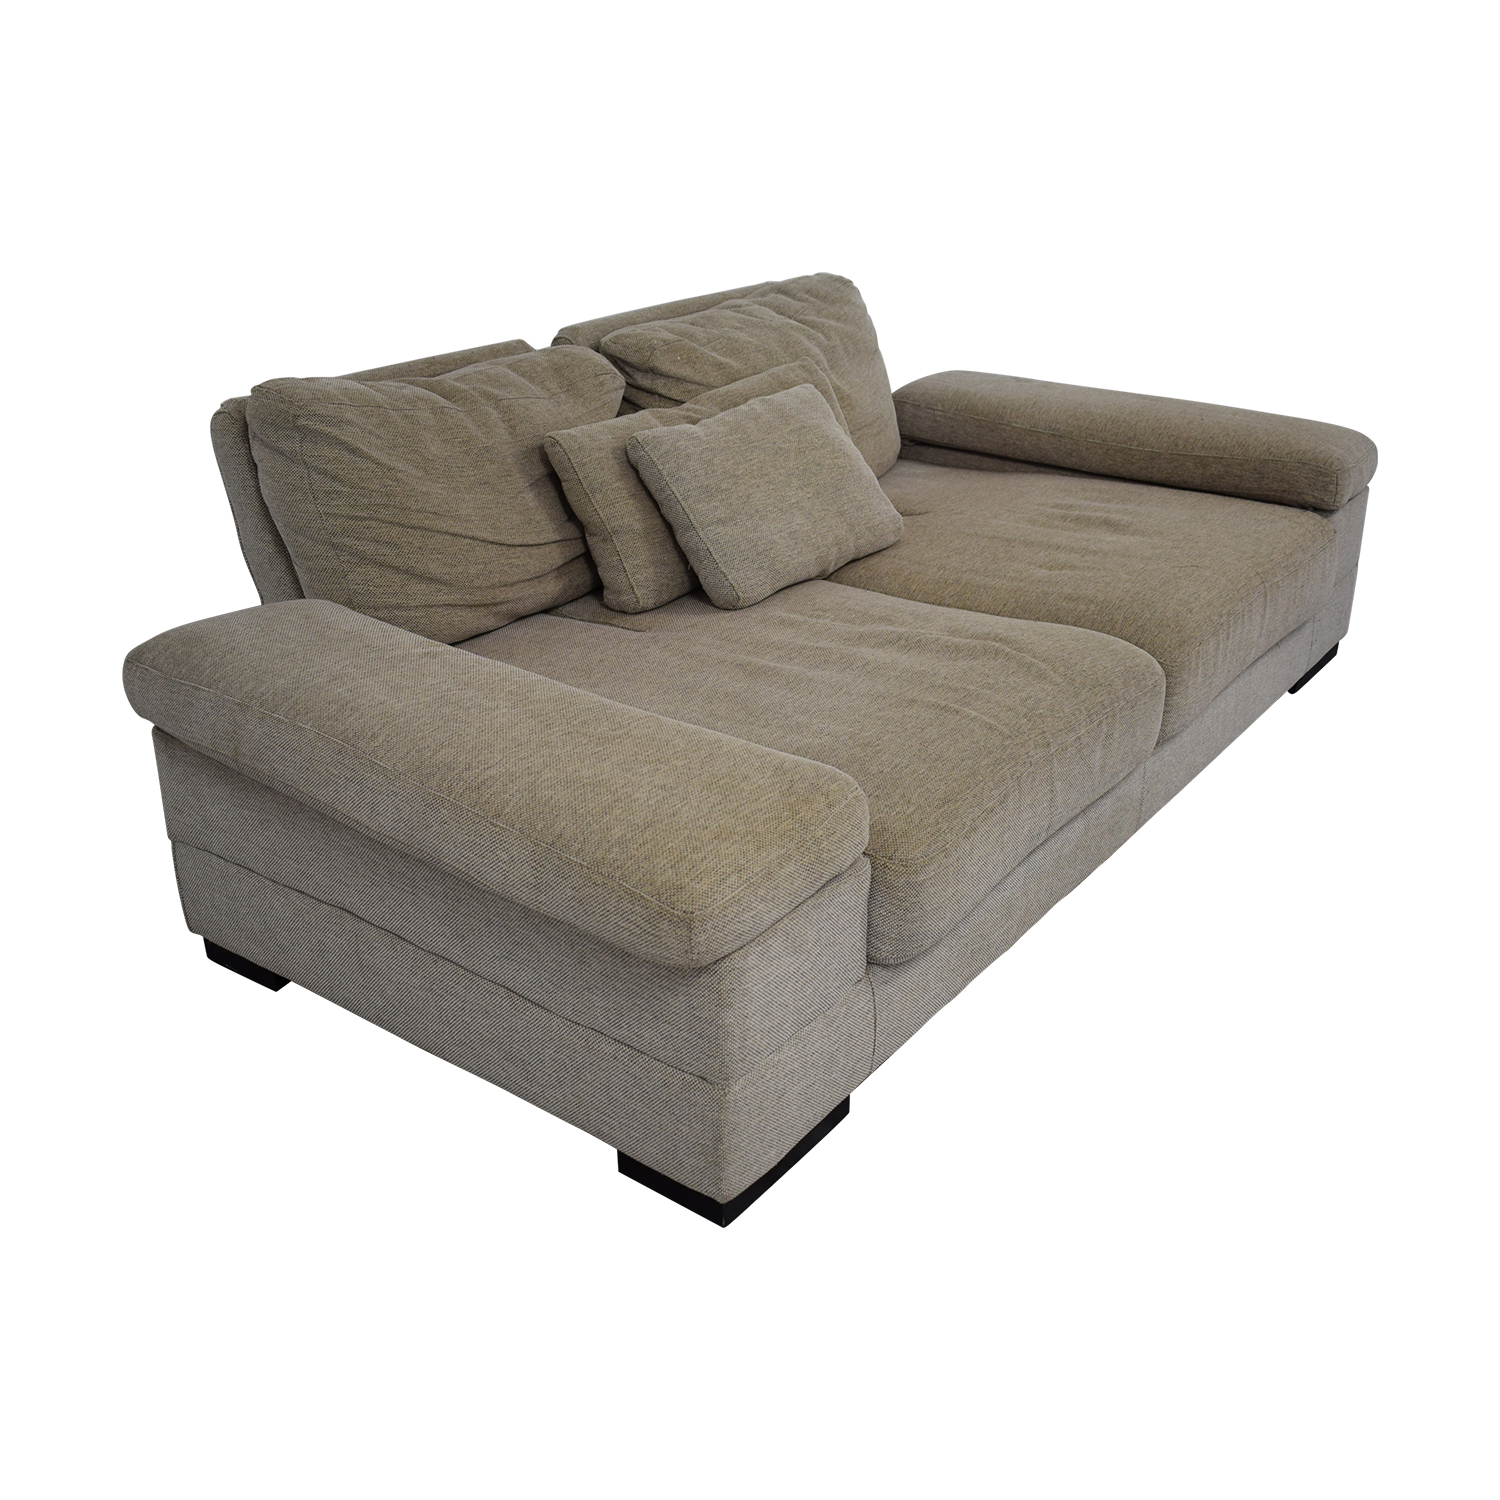 Lazzoni Lazzoni Kema Sectional Sofa Bed price